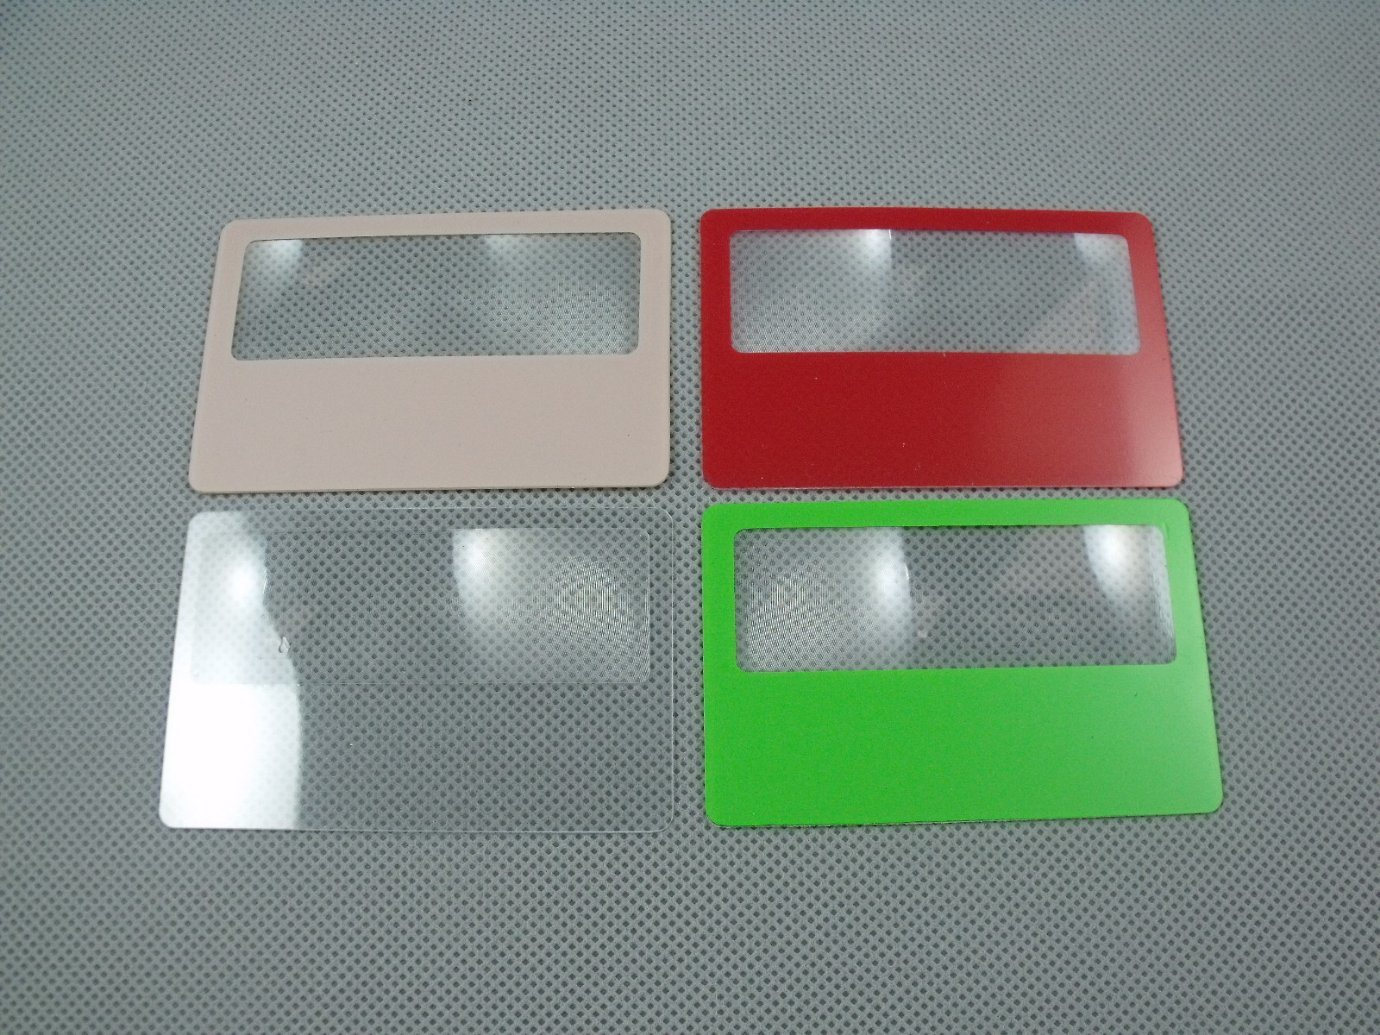 Hw802 Plastic PVC Flexible Business Credit Card with Fresnel Lens Magnifier